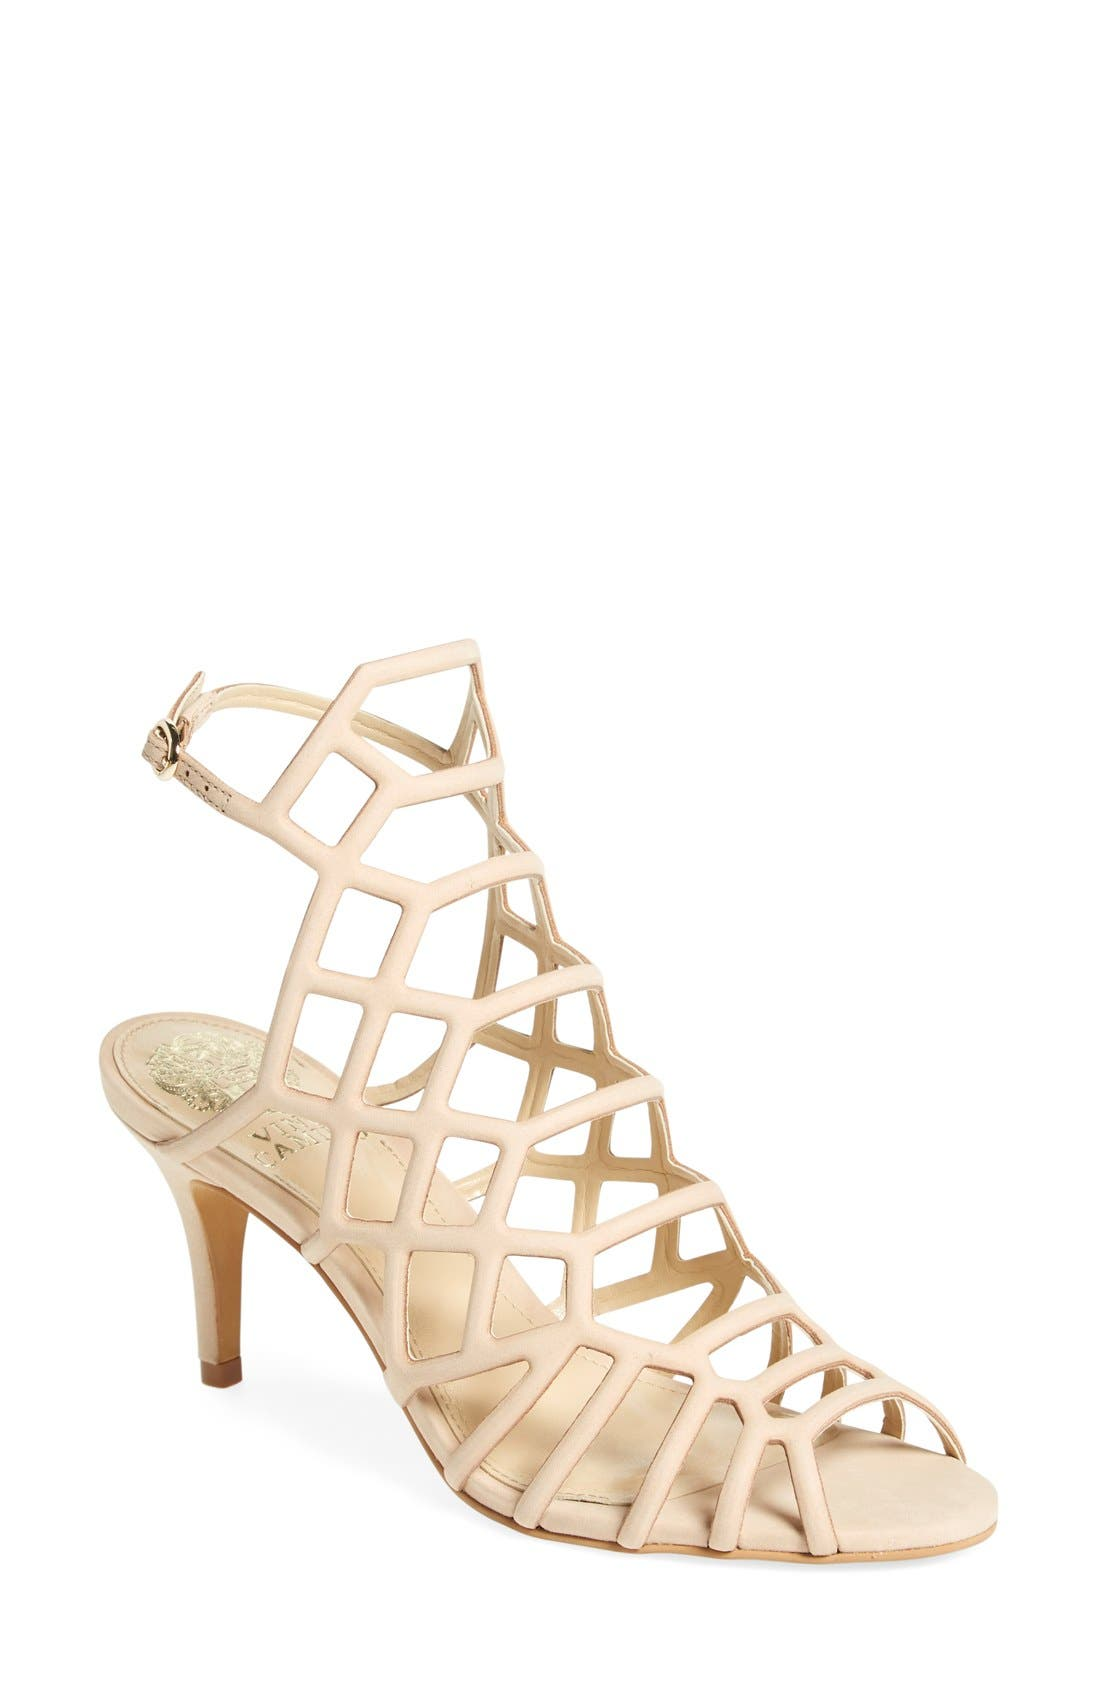 'Paxton' Slingback Sandal,                             Main thumbnail 1, color,                             Nude Leather